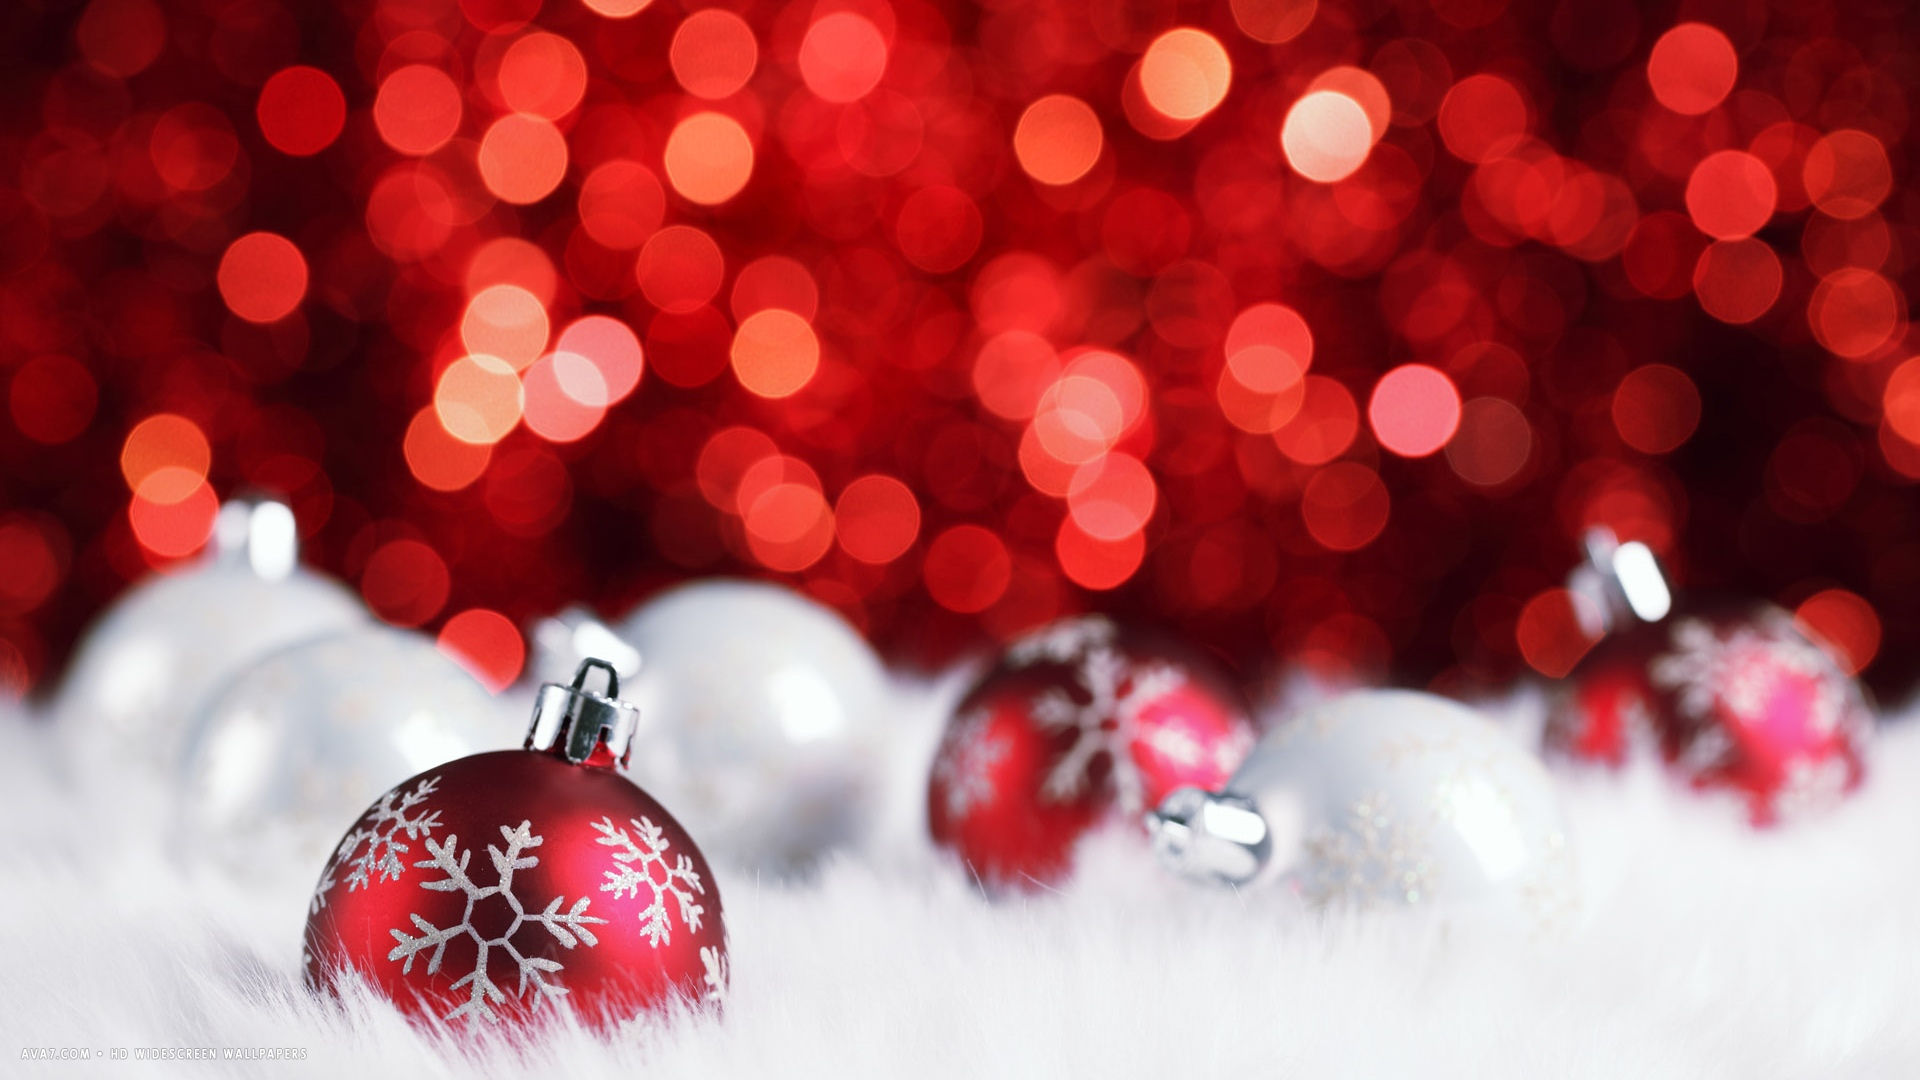 red silver christmas balls decorations bokeh holiday hd widescreen wallpaper - Red And Silver Christmas Ornaments